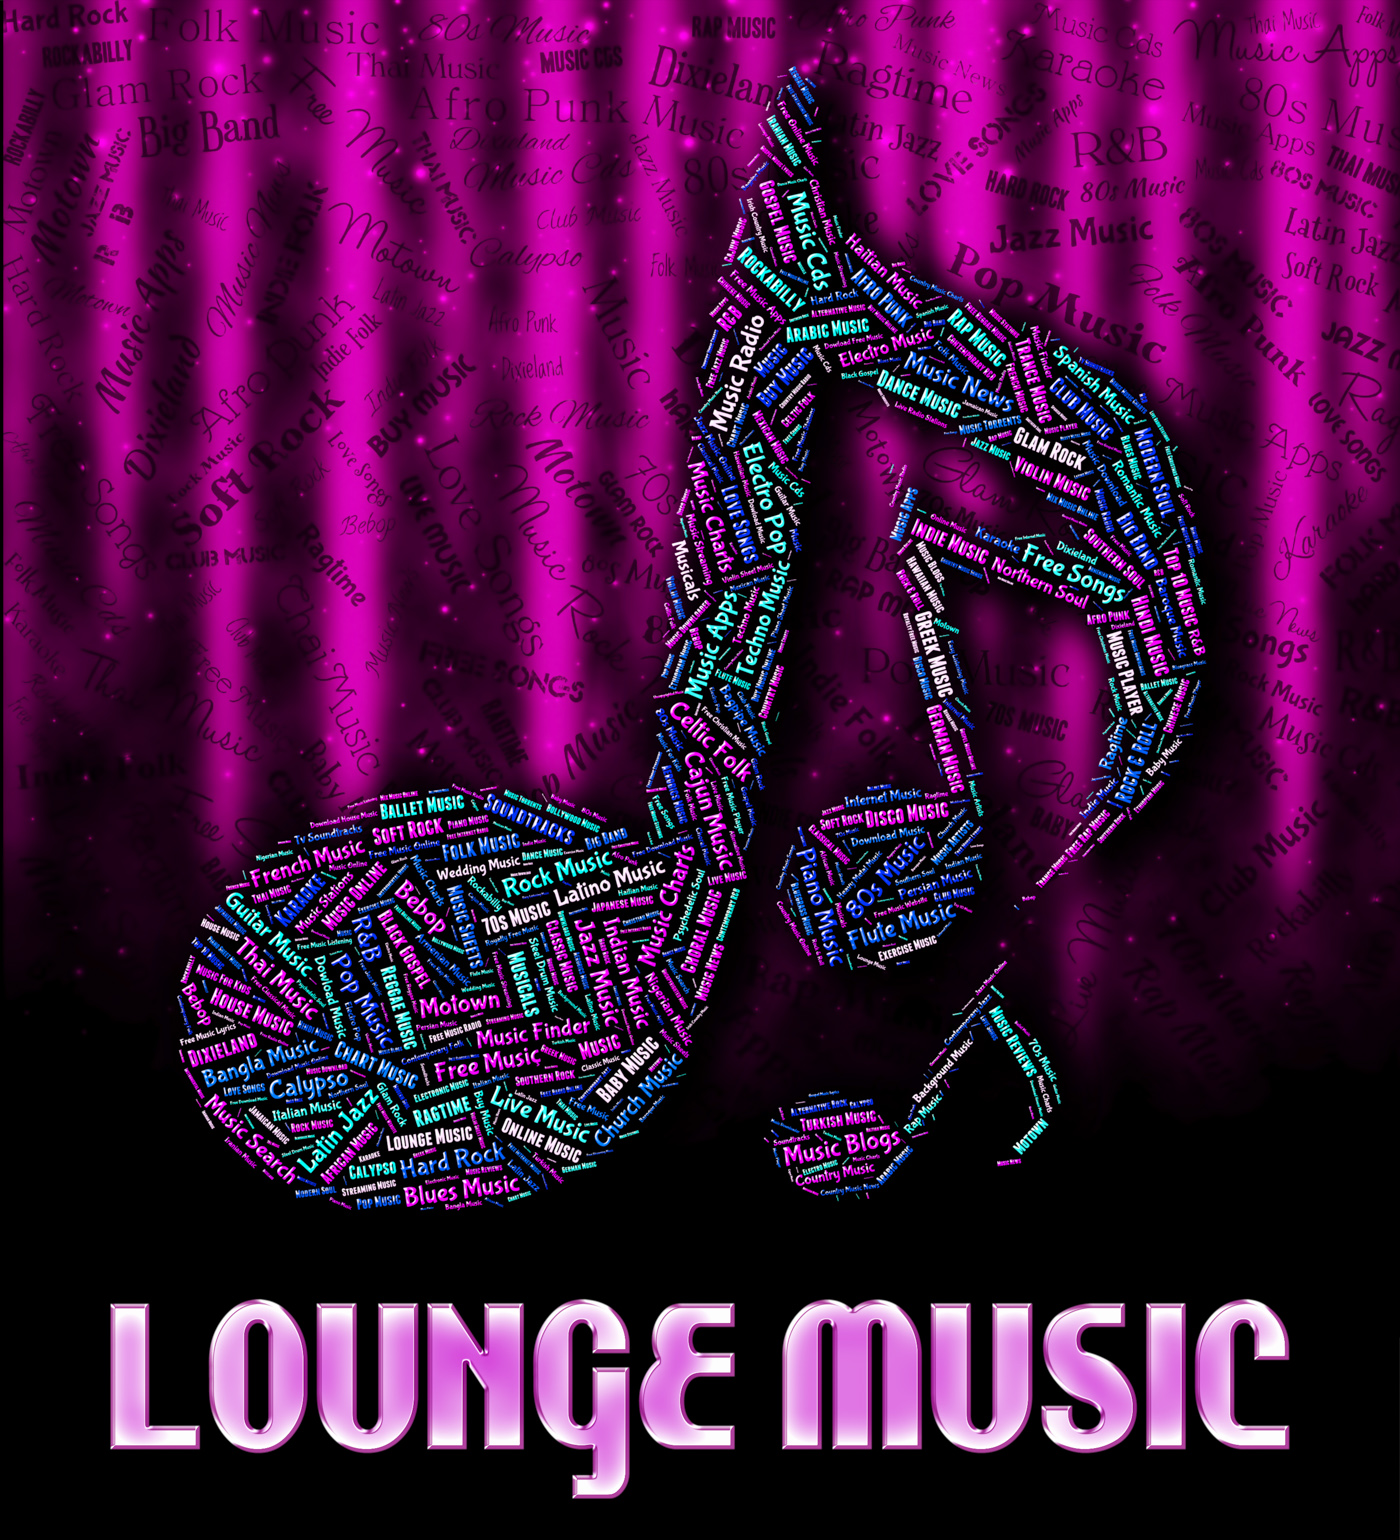 Lounge music indicates sound tracks and harmonies photo